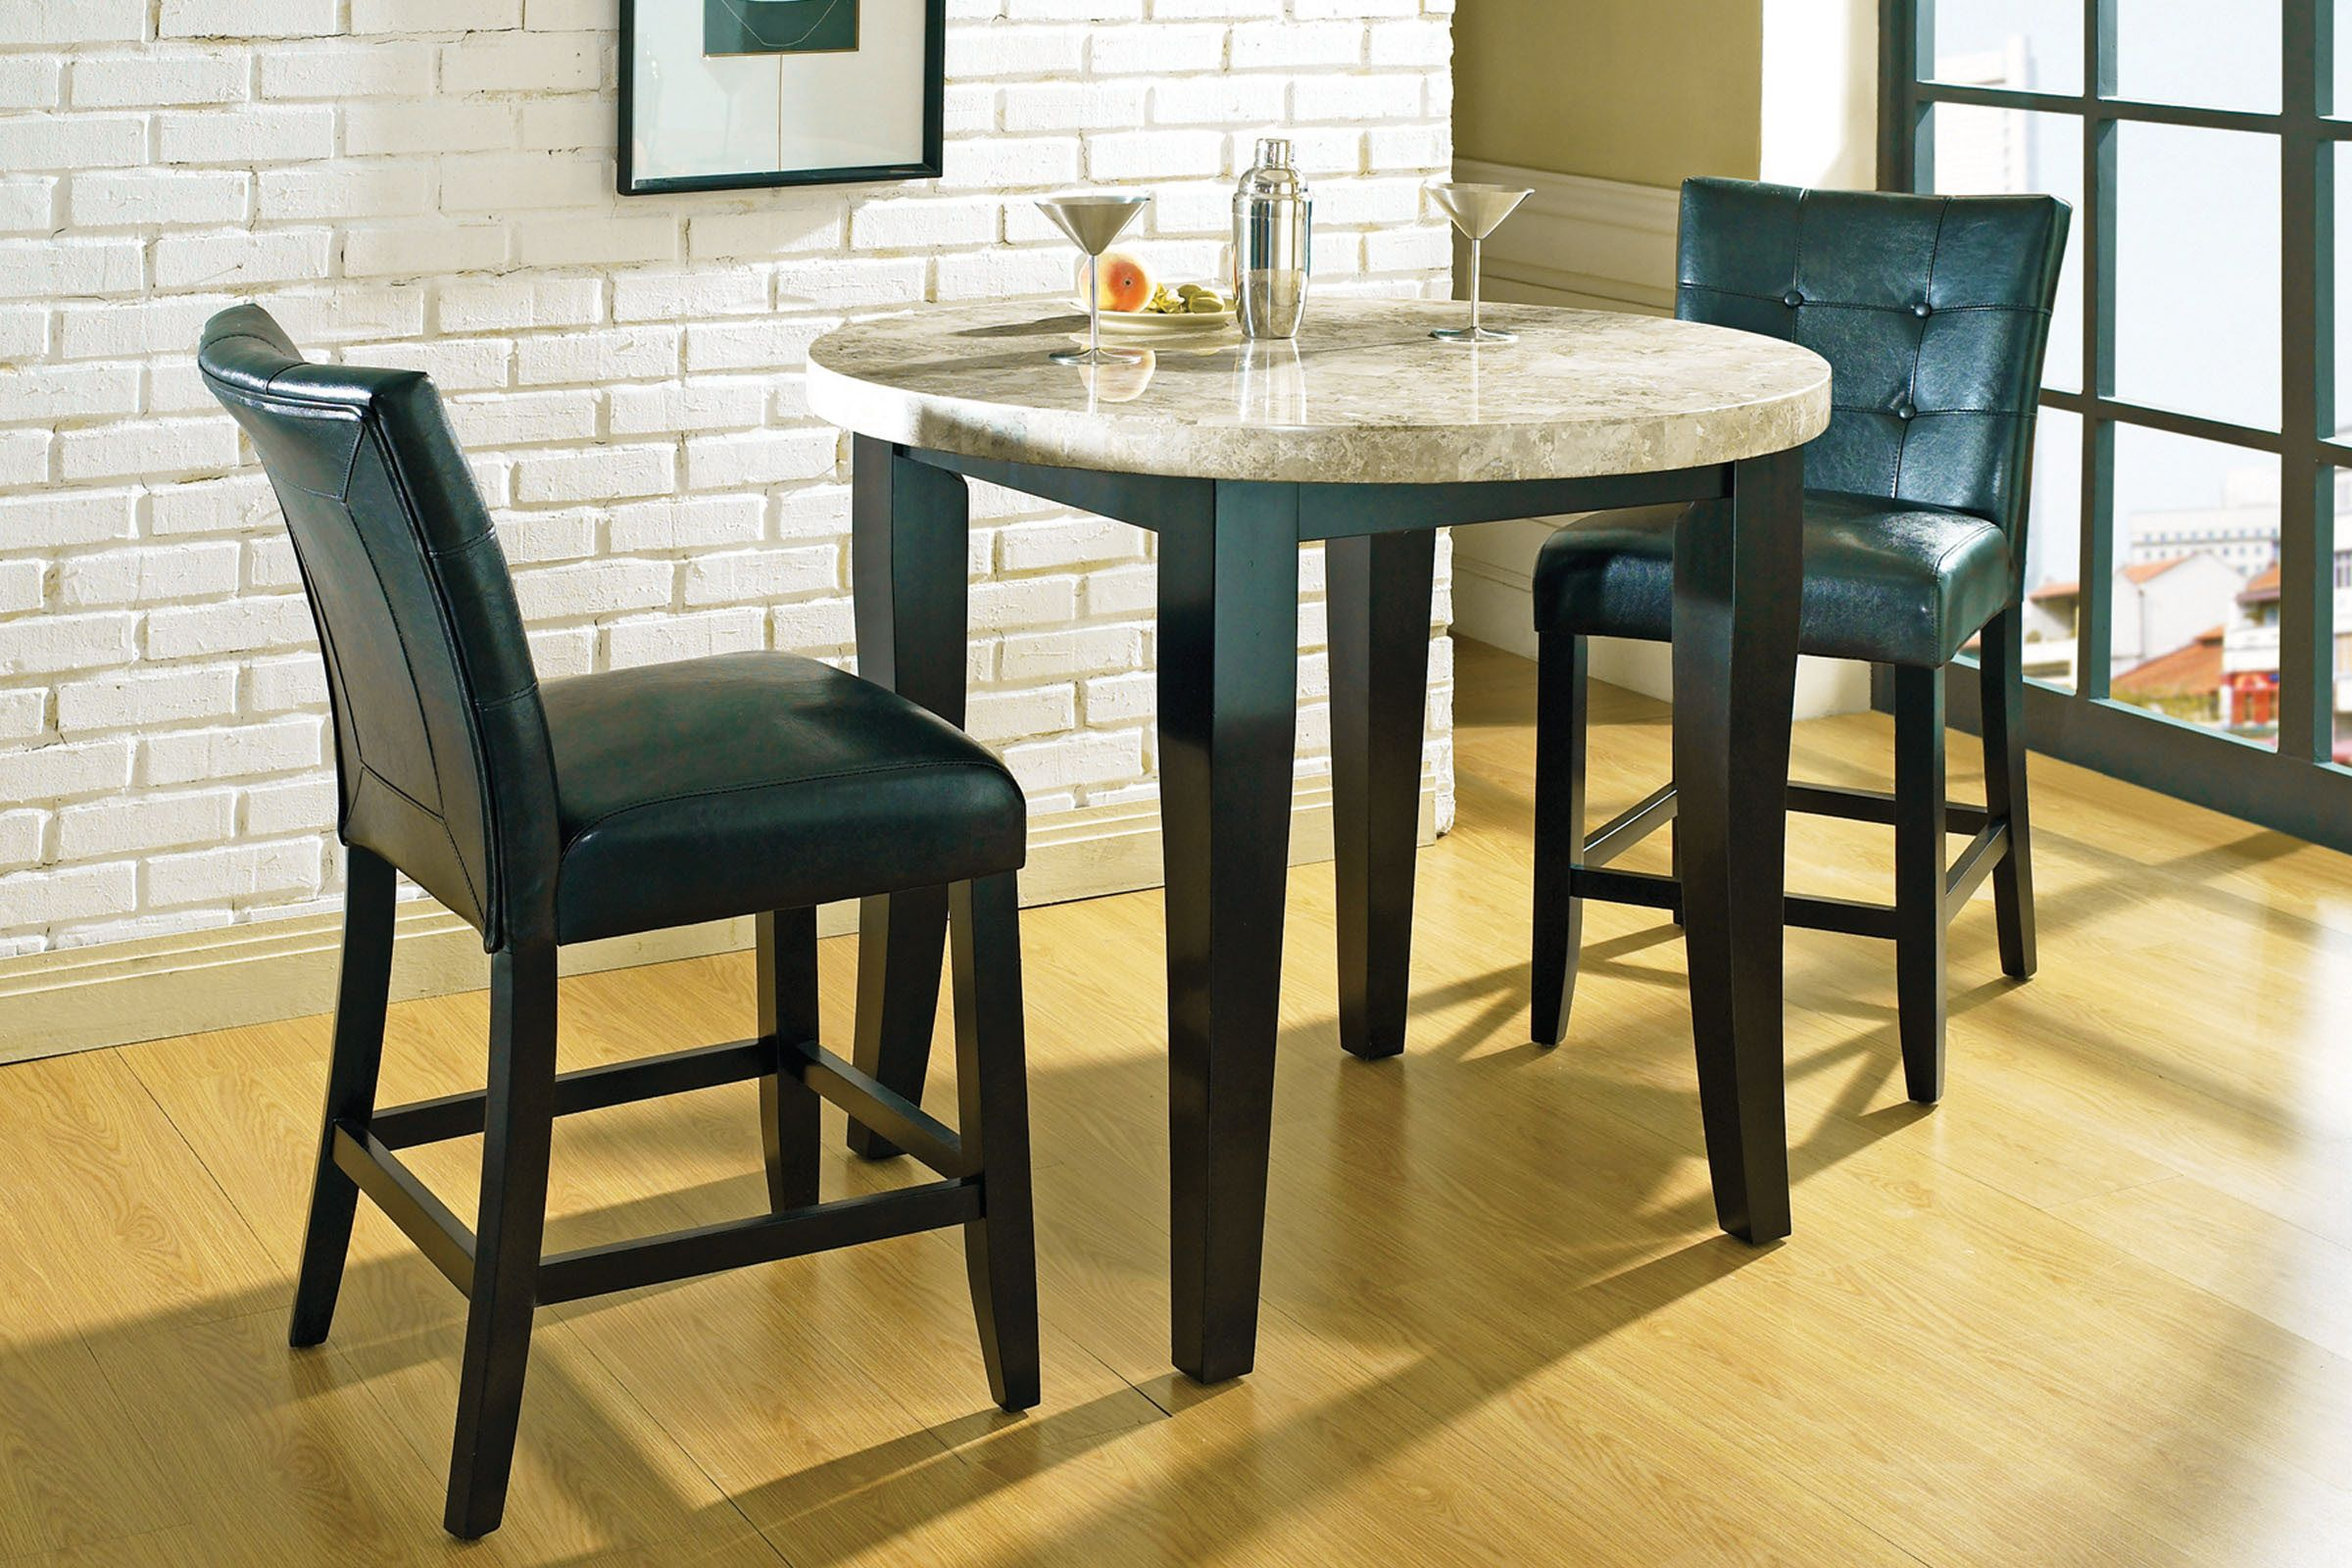 Picture of: Monarch Round Pub Table 4 Stools At Gardner White